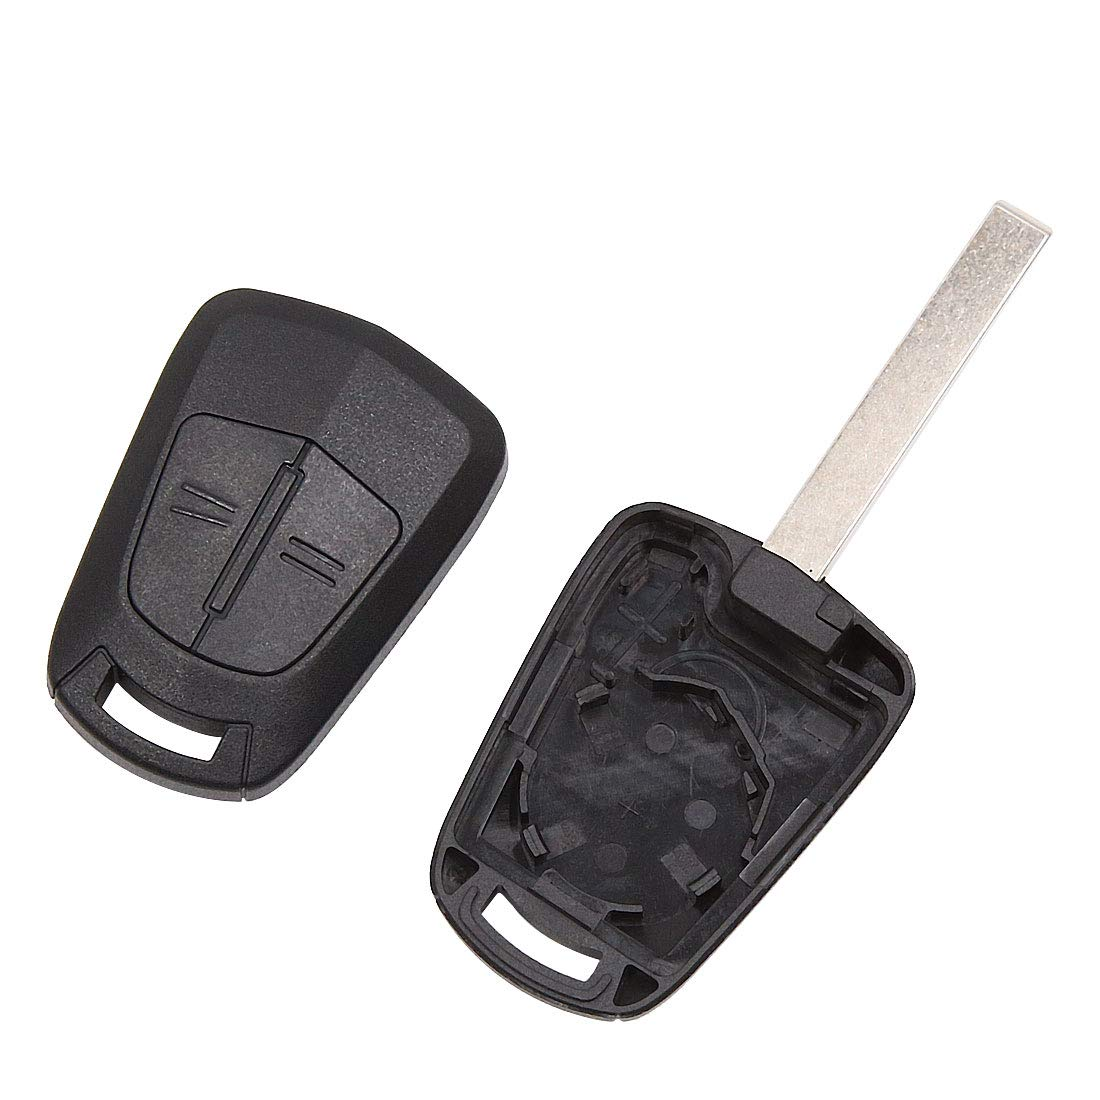 uxcell New 2 Buttons Uncut Insert Key Fob Case Remote Control Shell Replacement for Opel a18060500ux0259